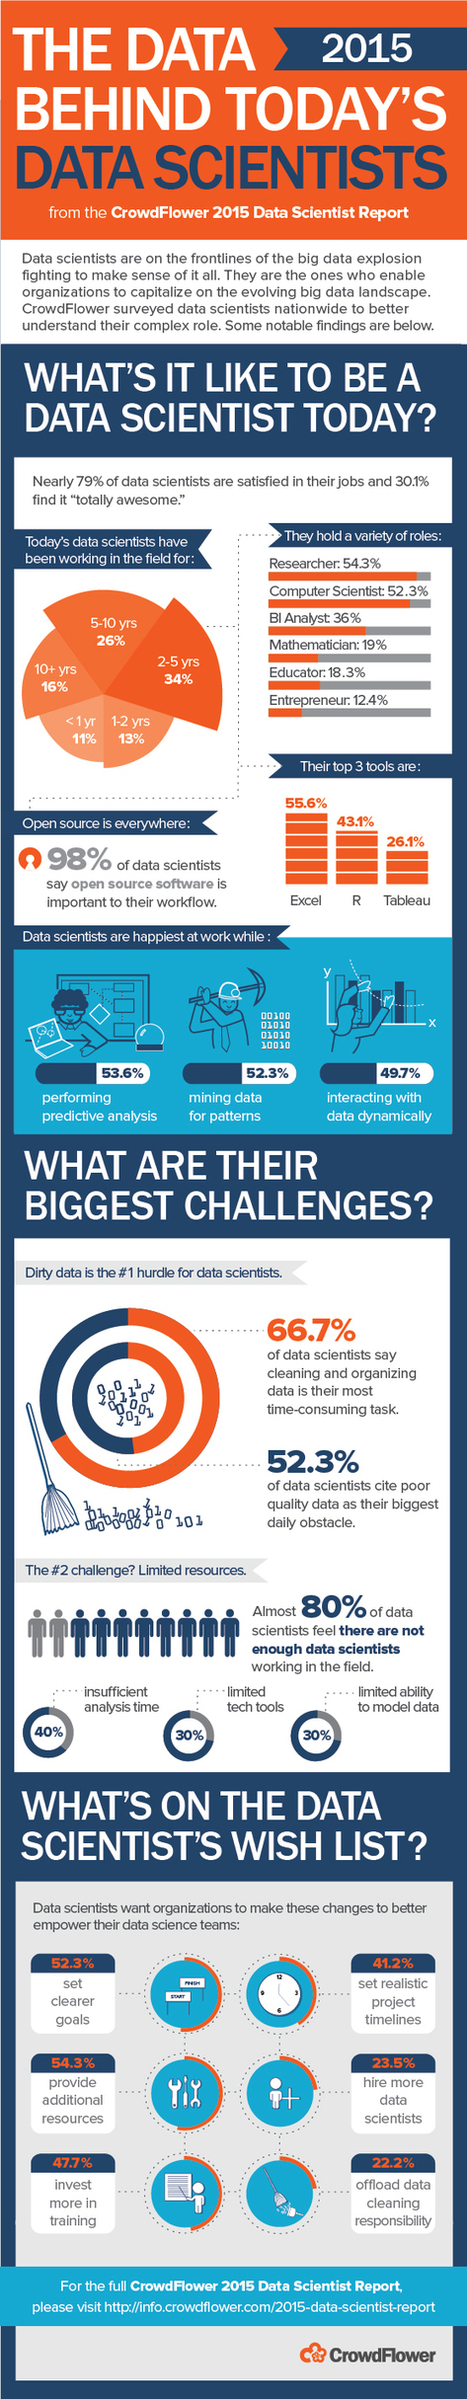 Being a Data Scientist in 2015 (Infographic)   Visual Data Mining   Scoop.it